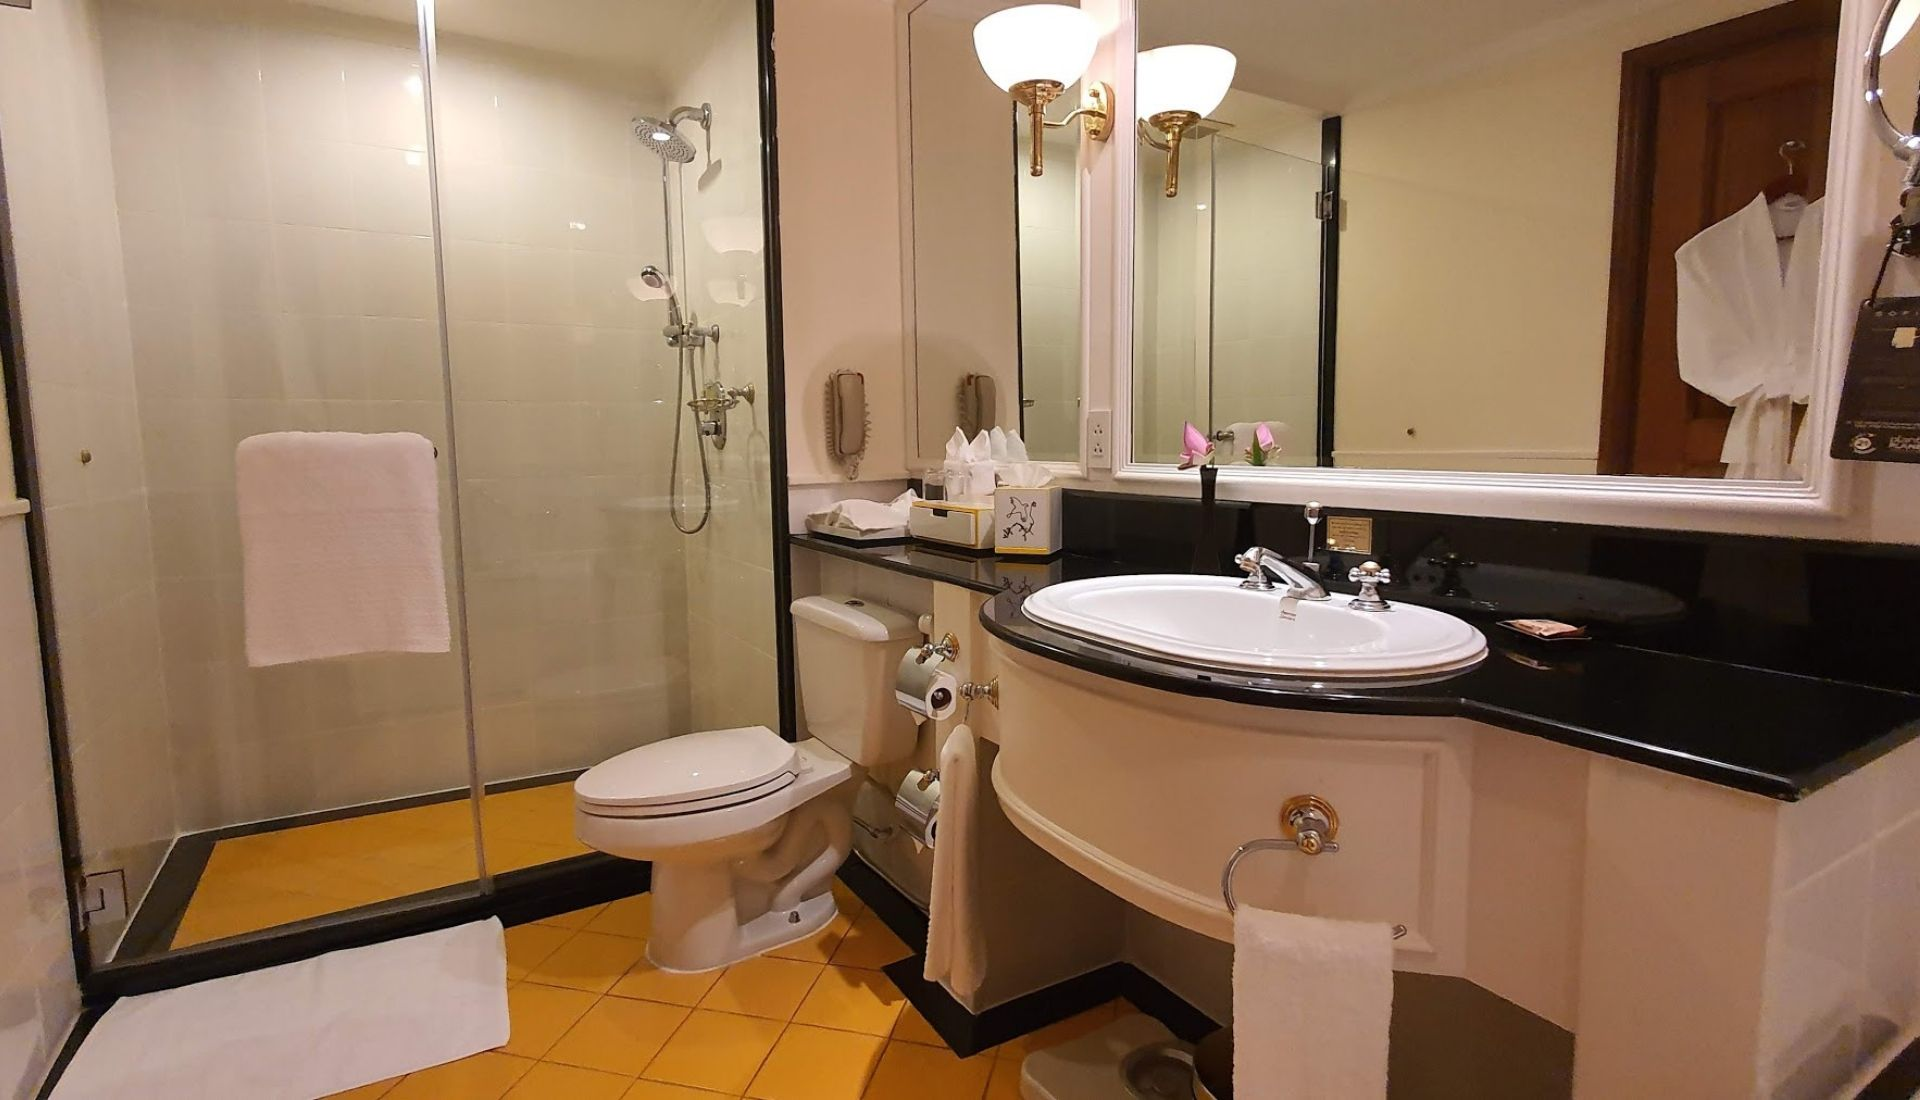 Generous sized bathrooms at the Sofitel Siem Reap